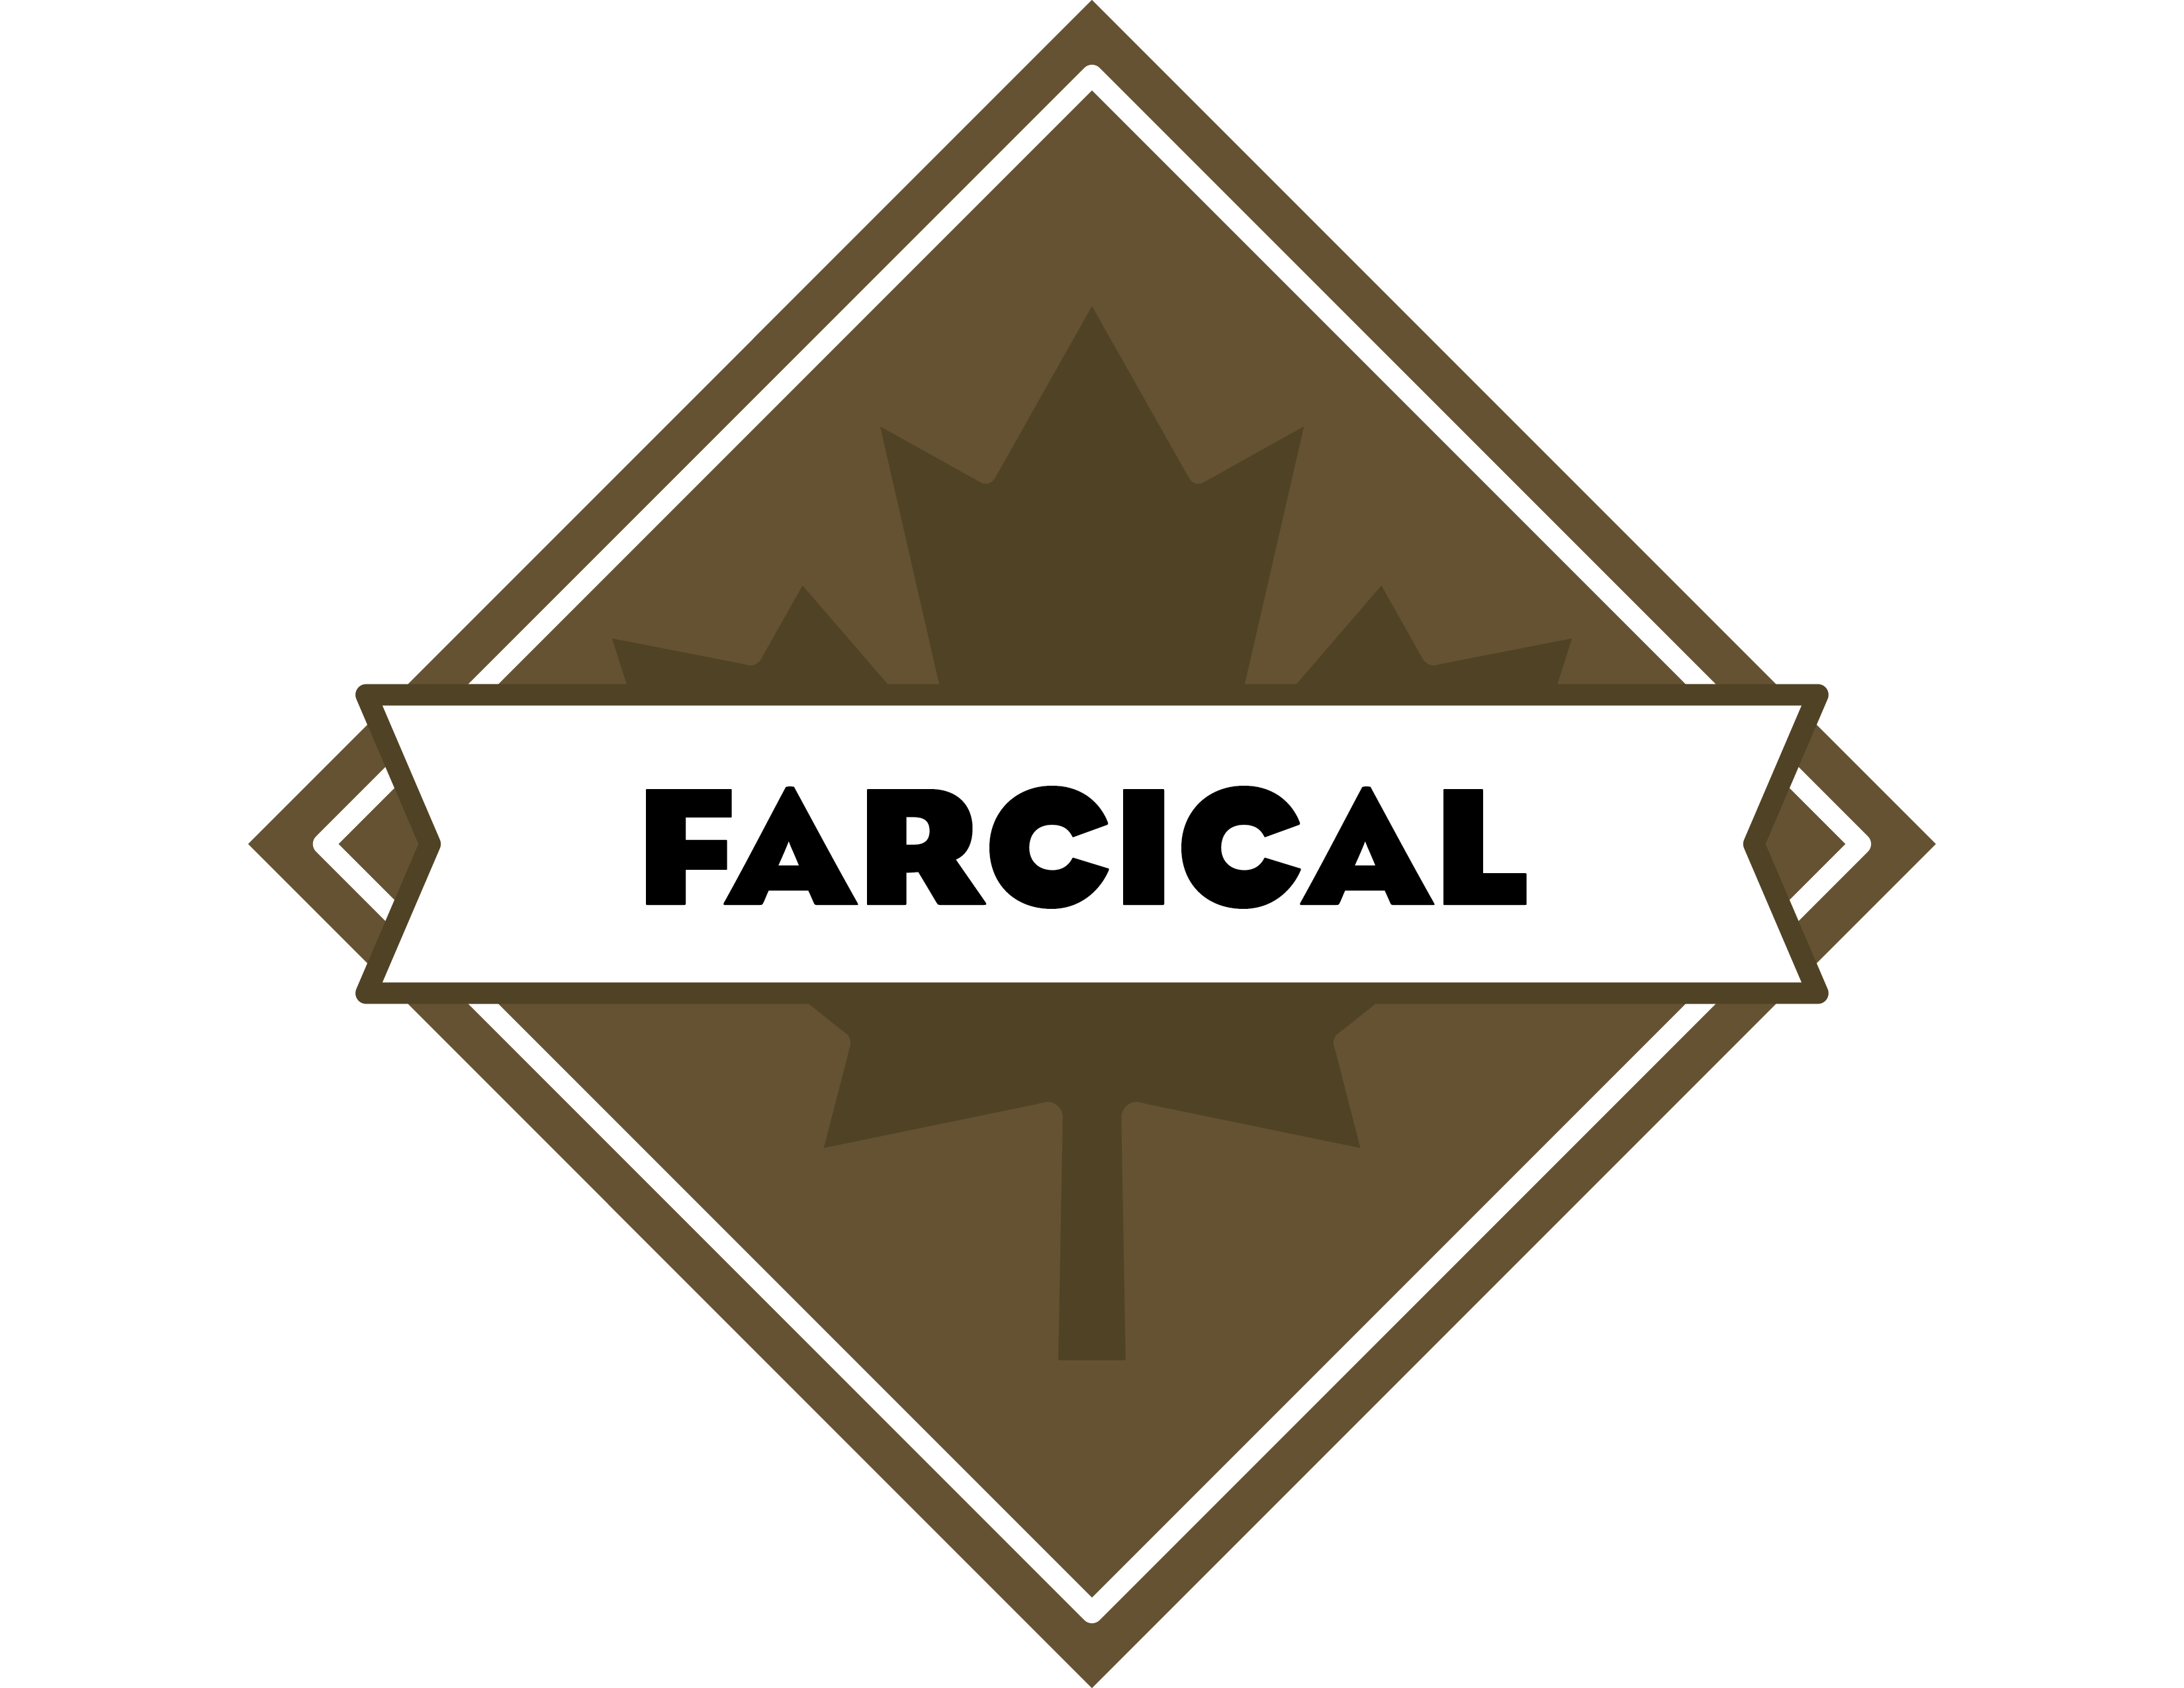 FactsCan Score: Farcical